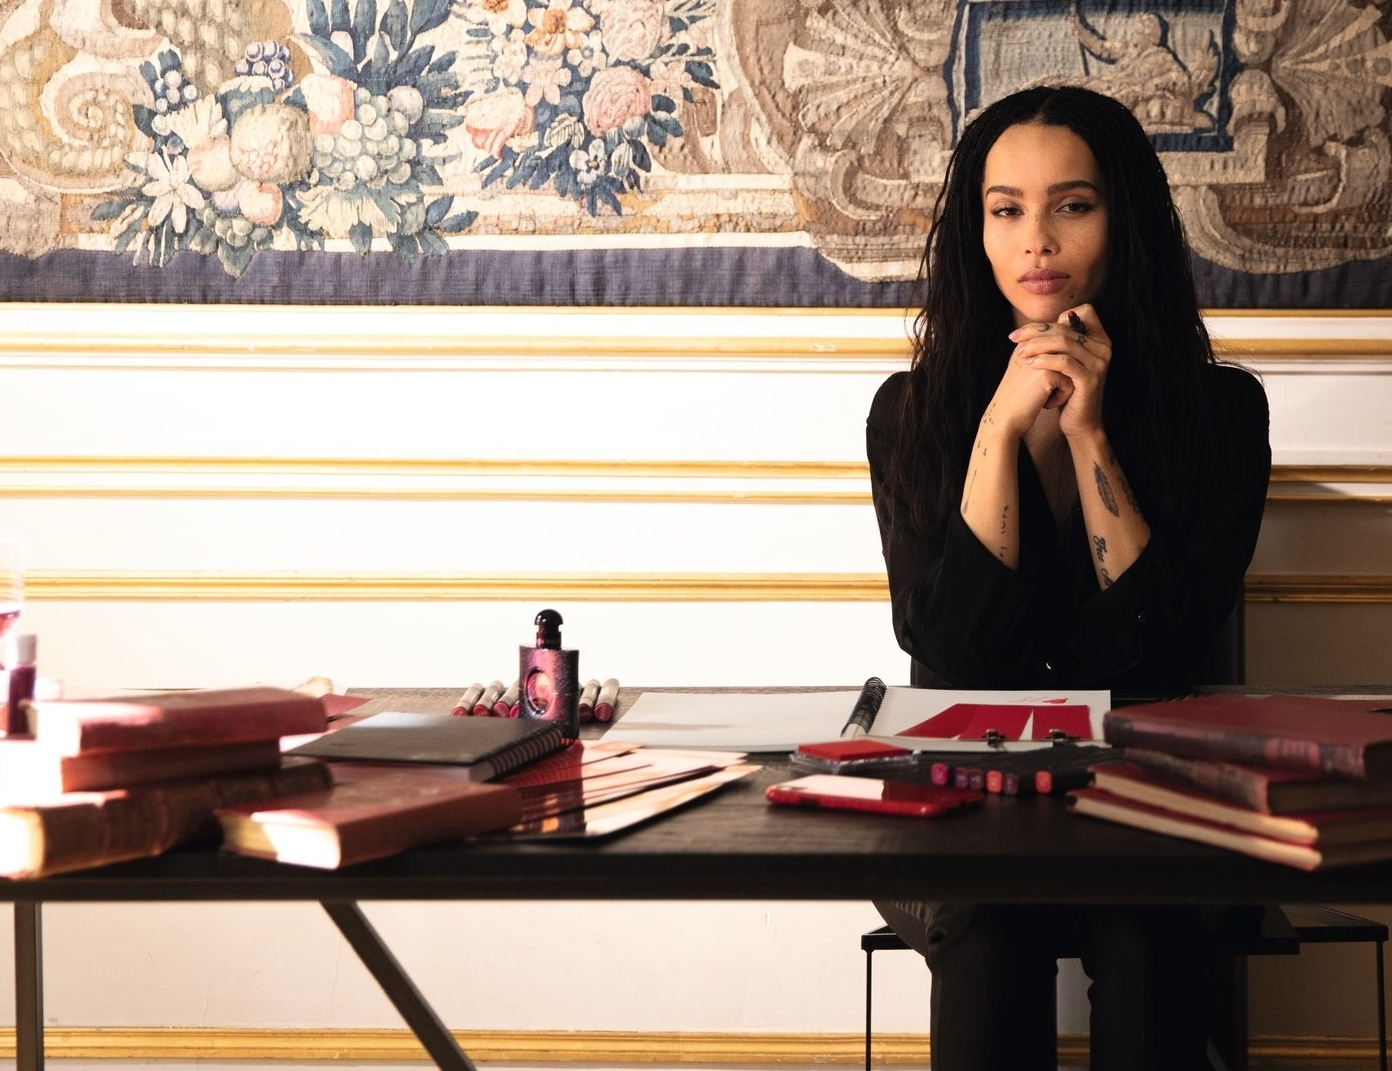 YSL-Zoë-Kravitz-Collection-Banner-01